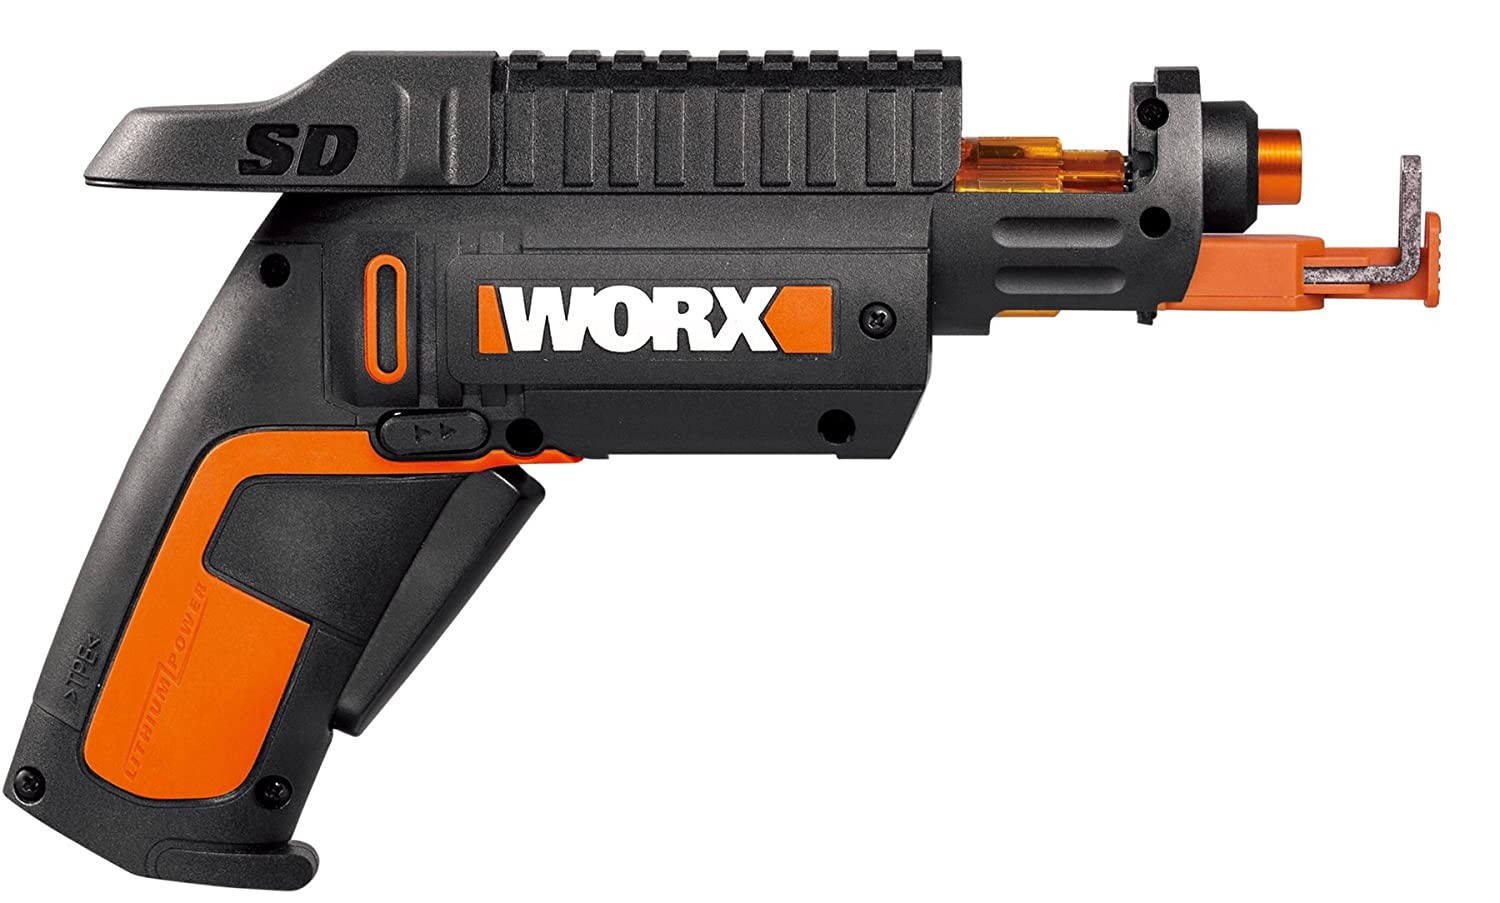 Worx Wx255l Sd Semi Automatic Power Screw Driver With Bor Impact Drivers Wrench Ryobi Iw 2000 Holder Home Improvement